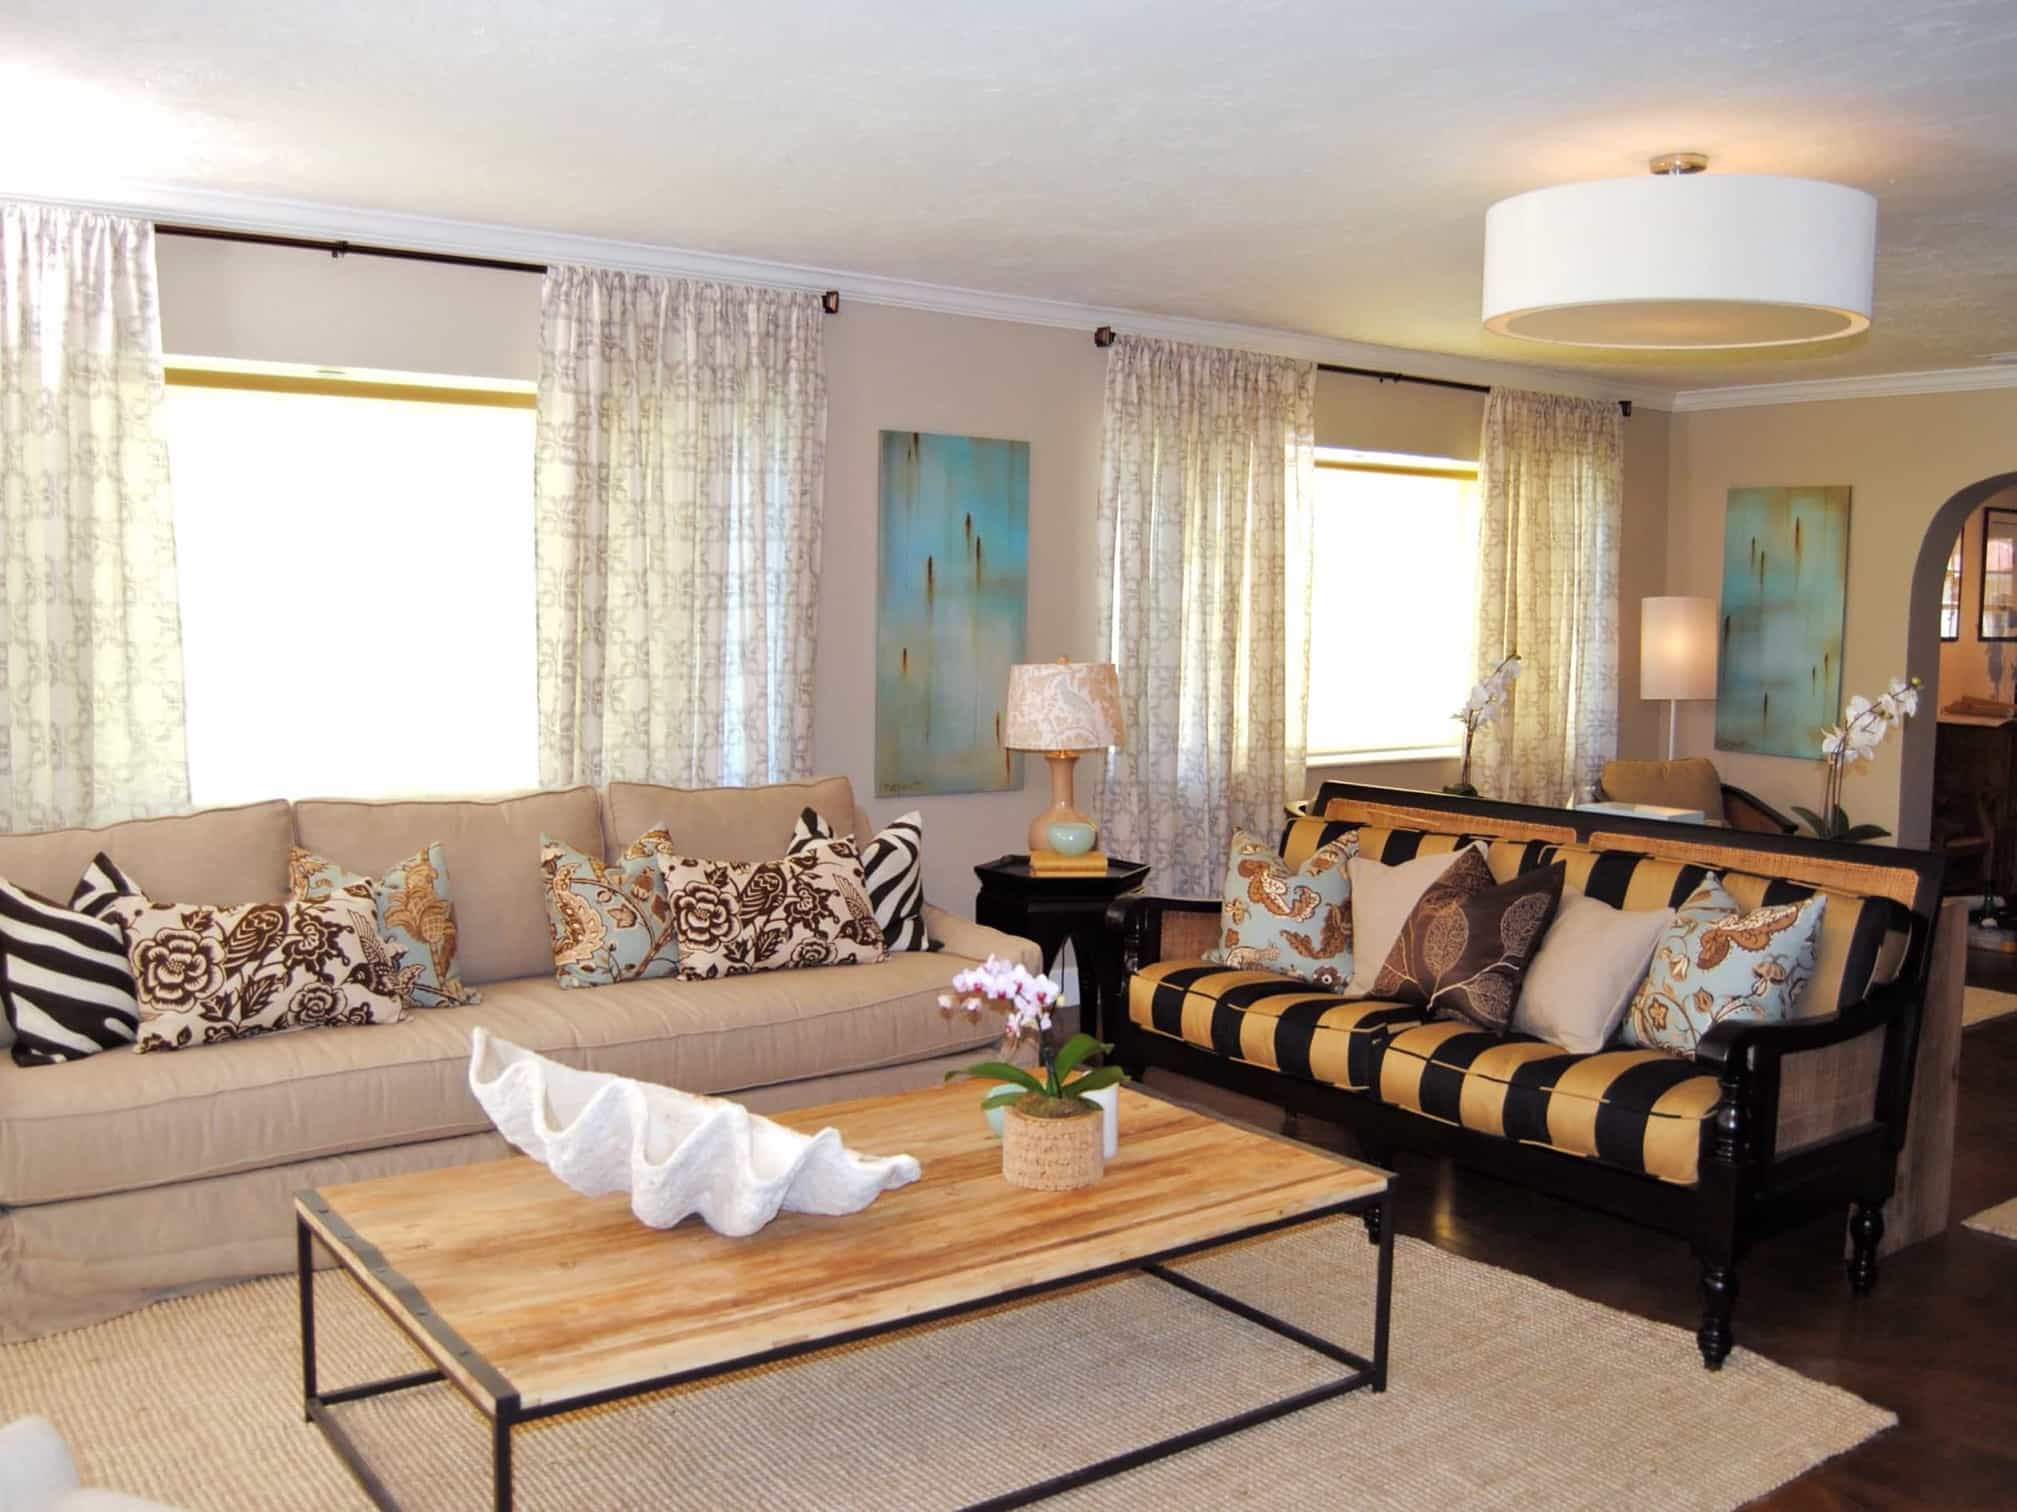 Living Room With Soft Colors And Bold Patterns 50134